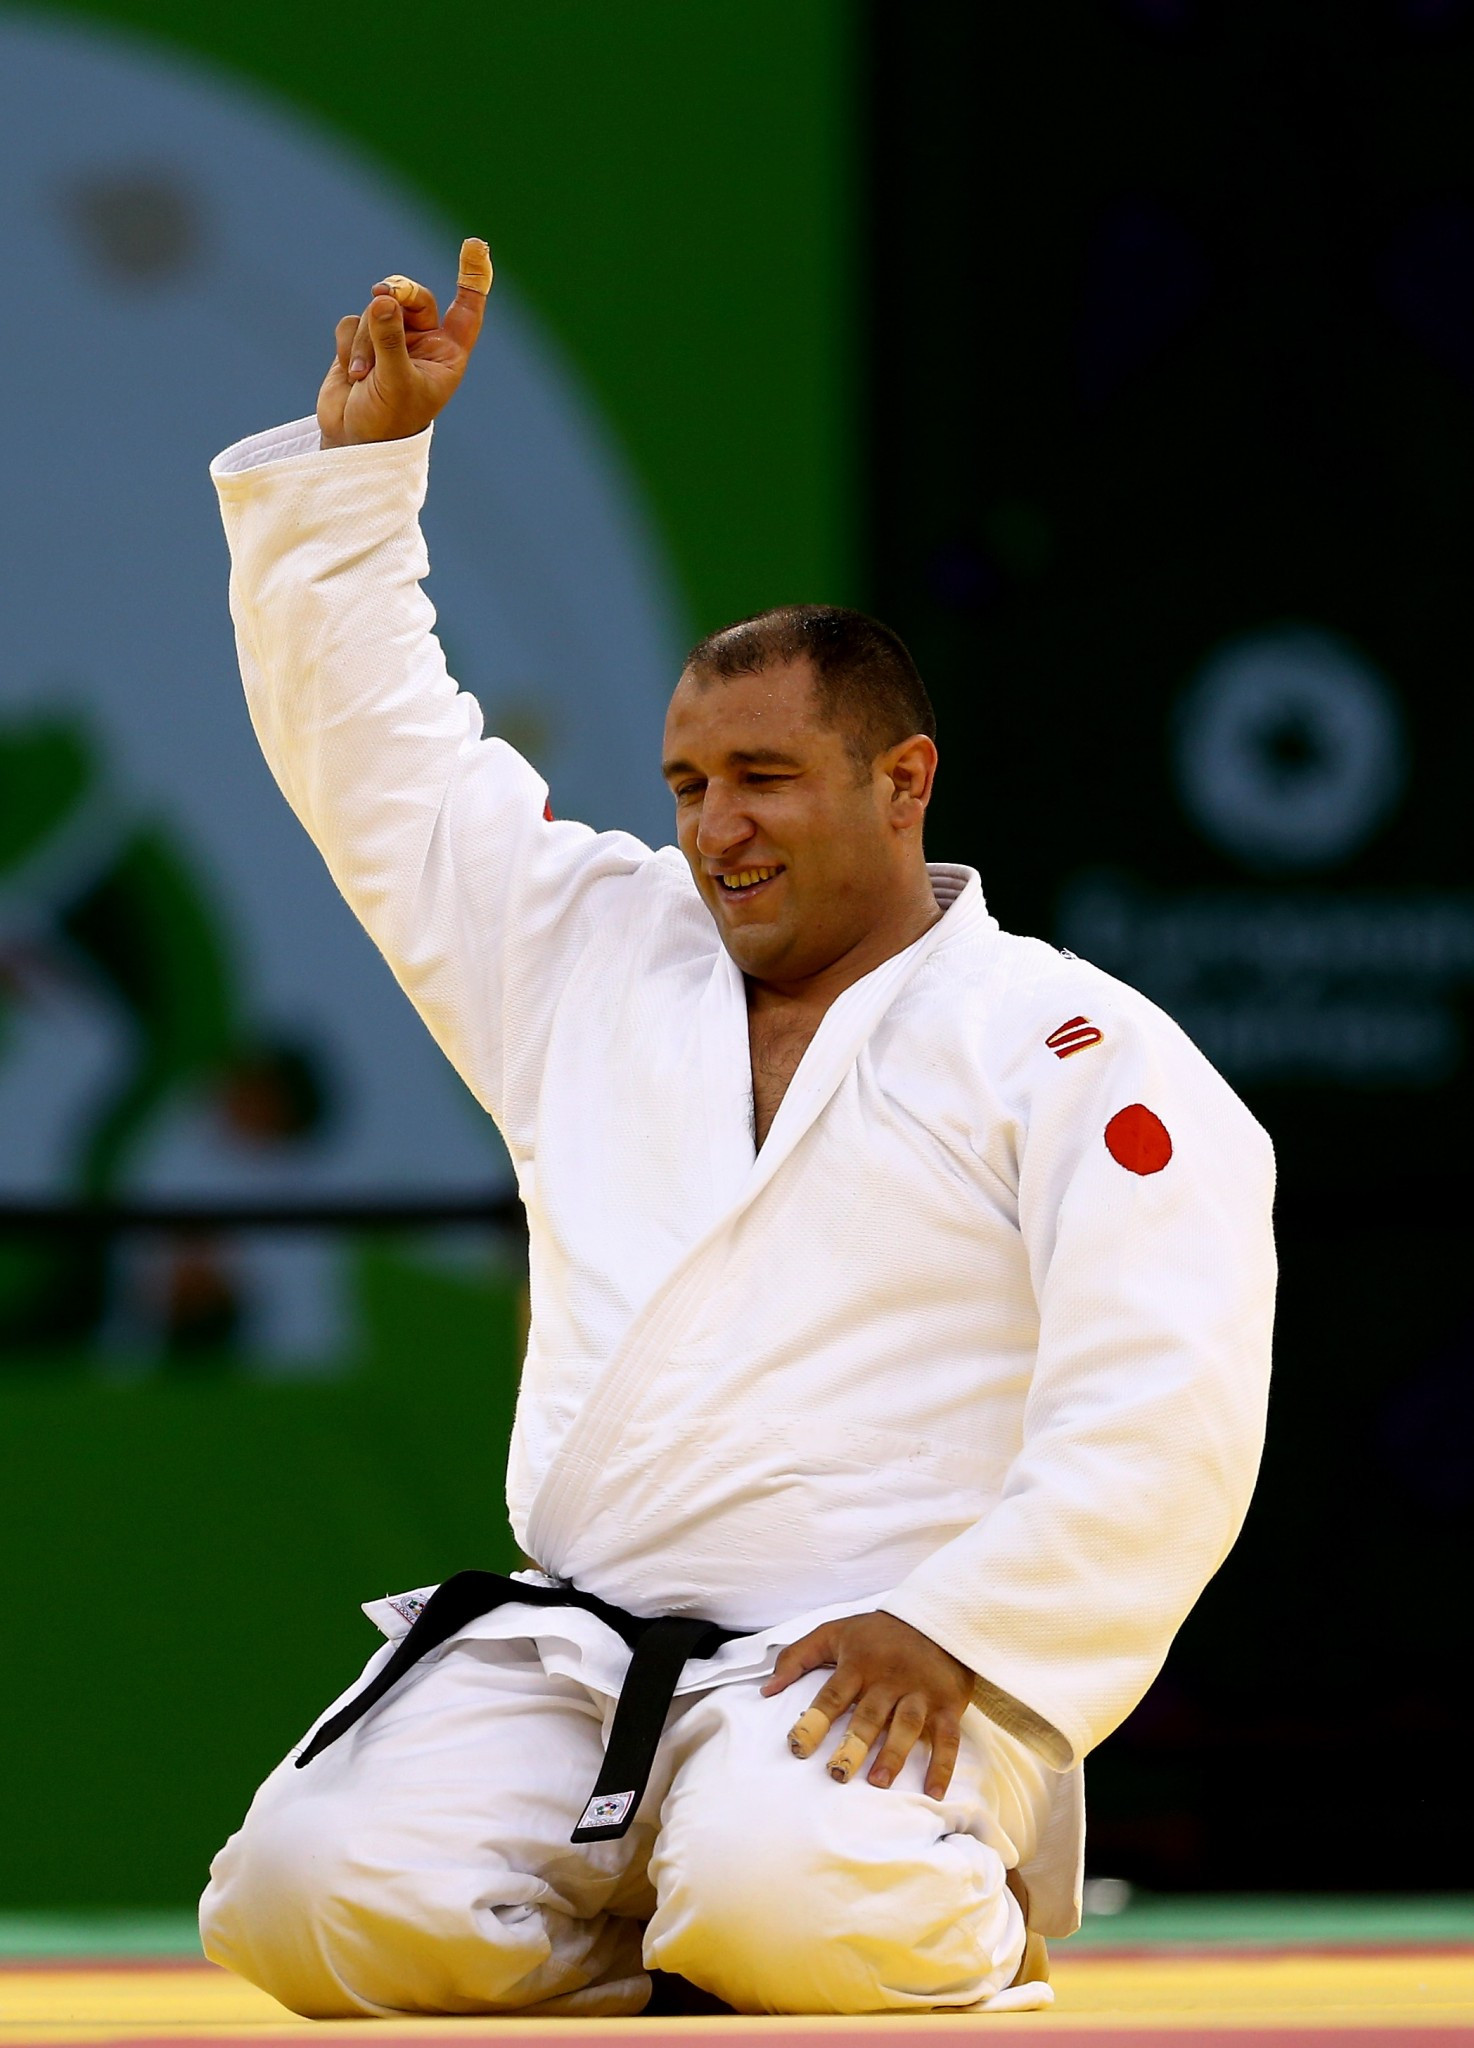 Ilham Zakiyev won a seventh consecutive European gold medal today ©Getty Images